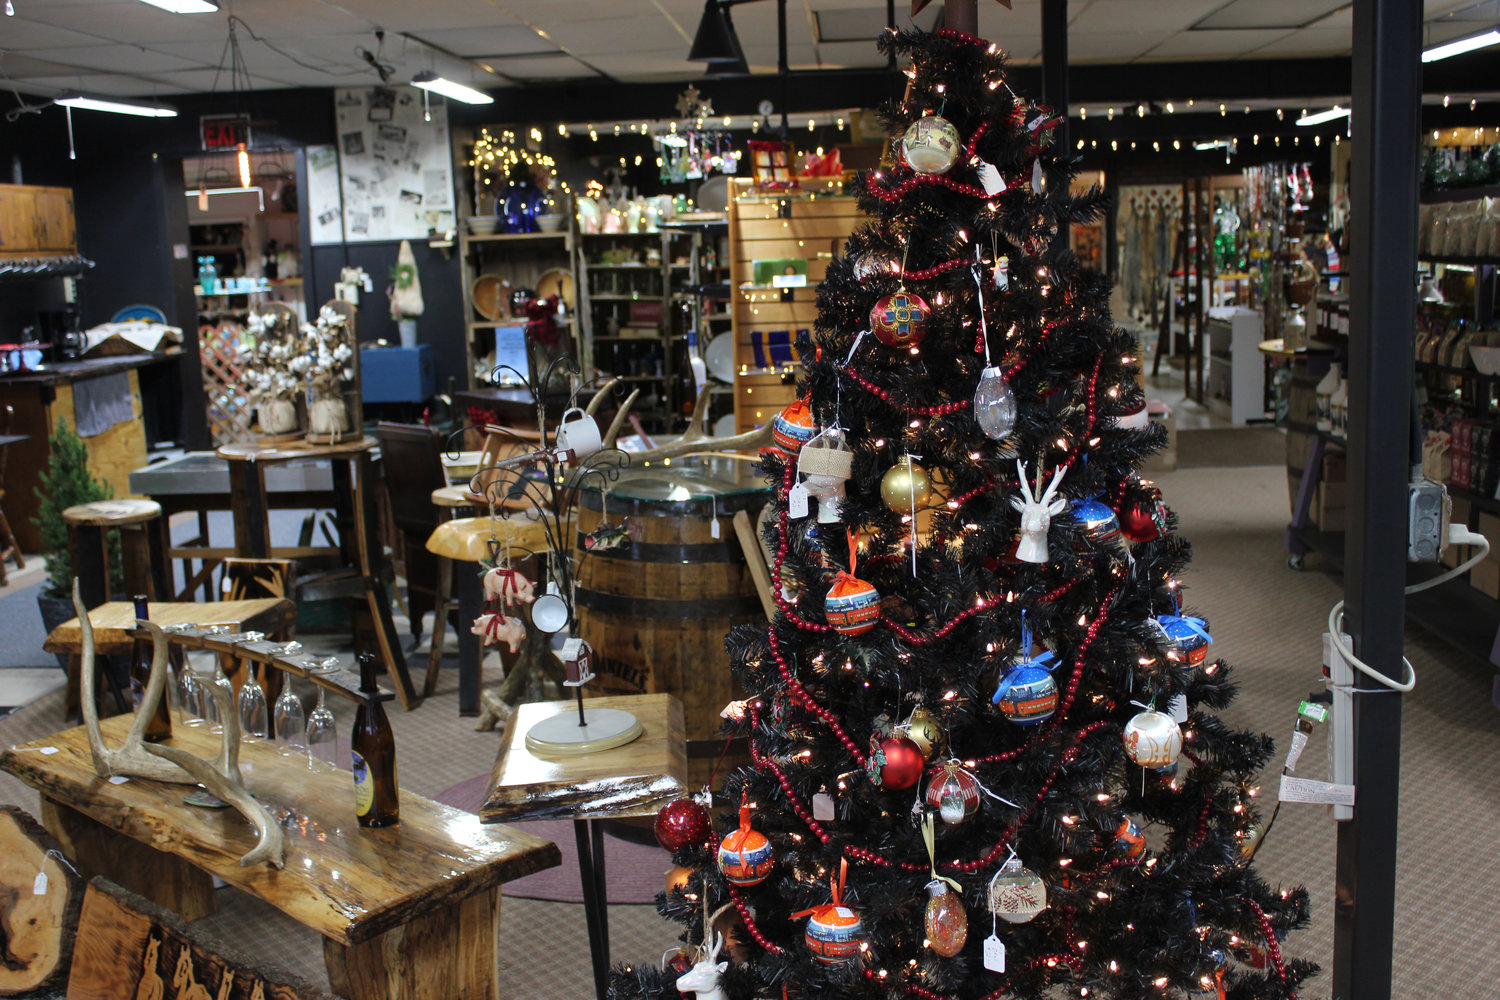 A BIT OF EVERYTHING — The Eclectic Mercantile has a little bit of everything up for sale.